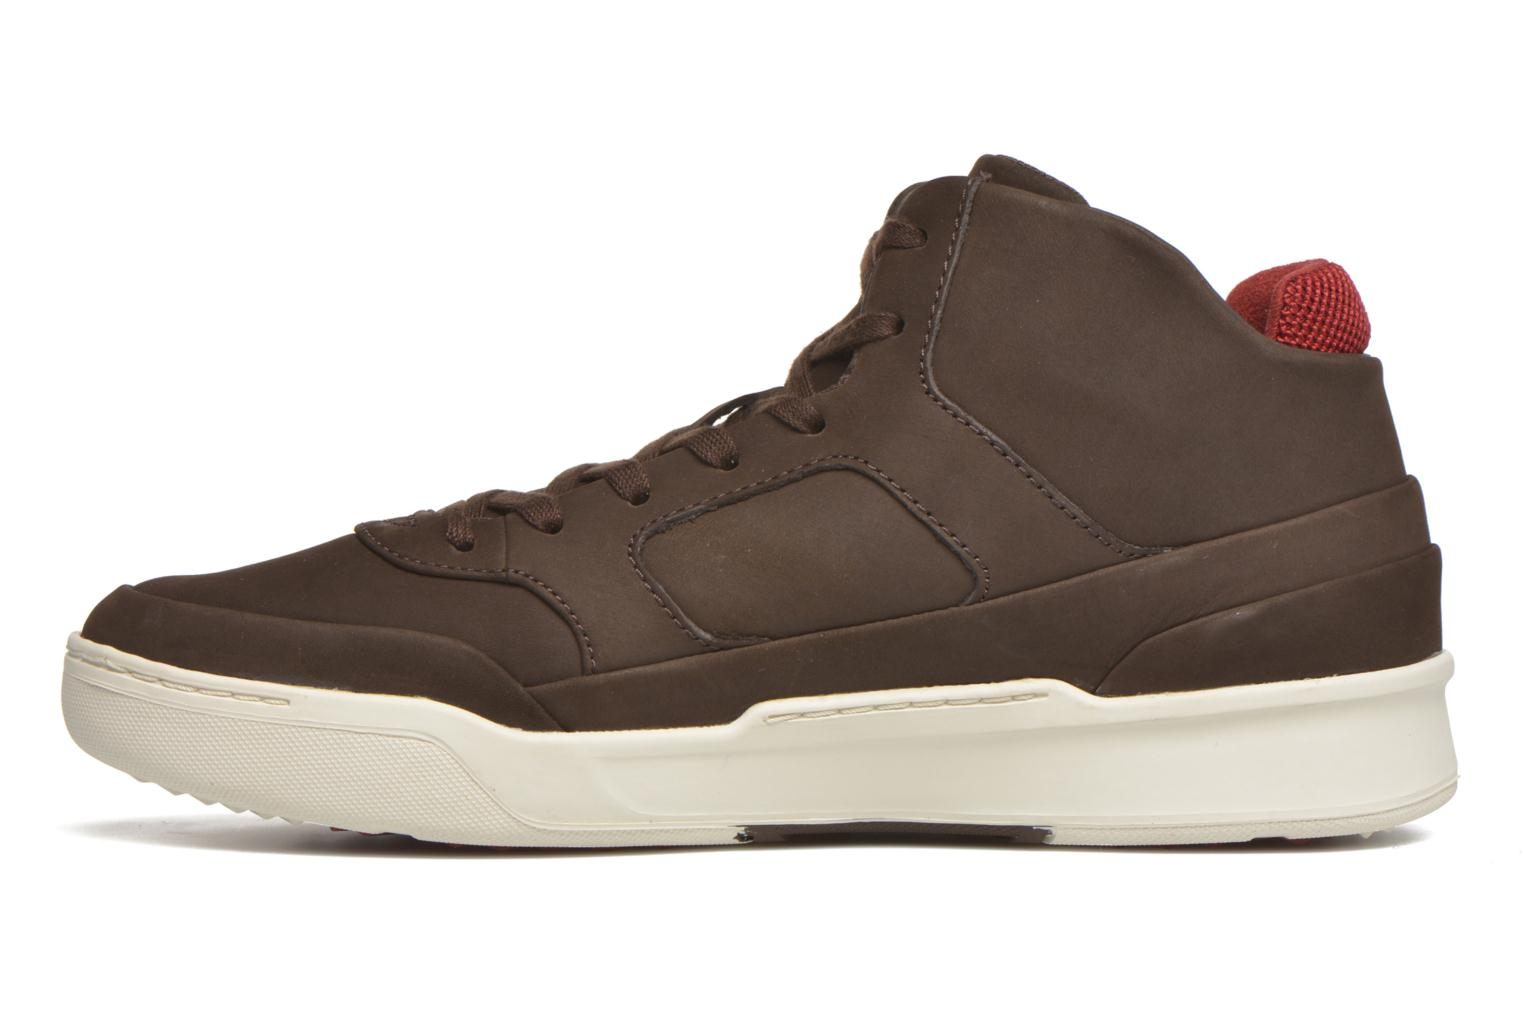 Baskets Lacoste Explorateur Mid 416 1 Marron vue face